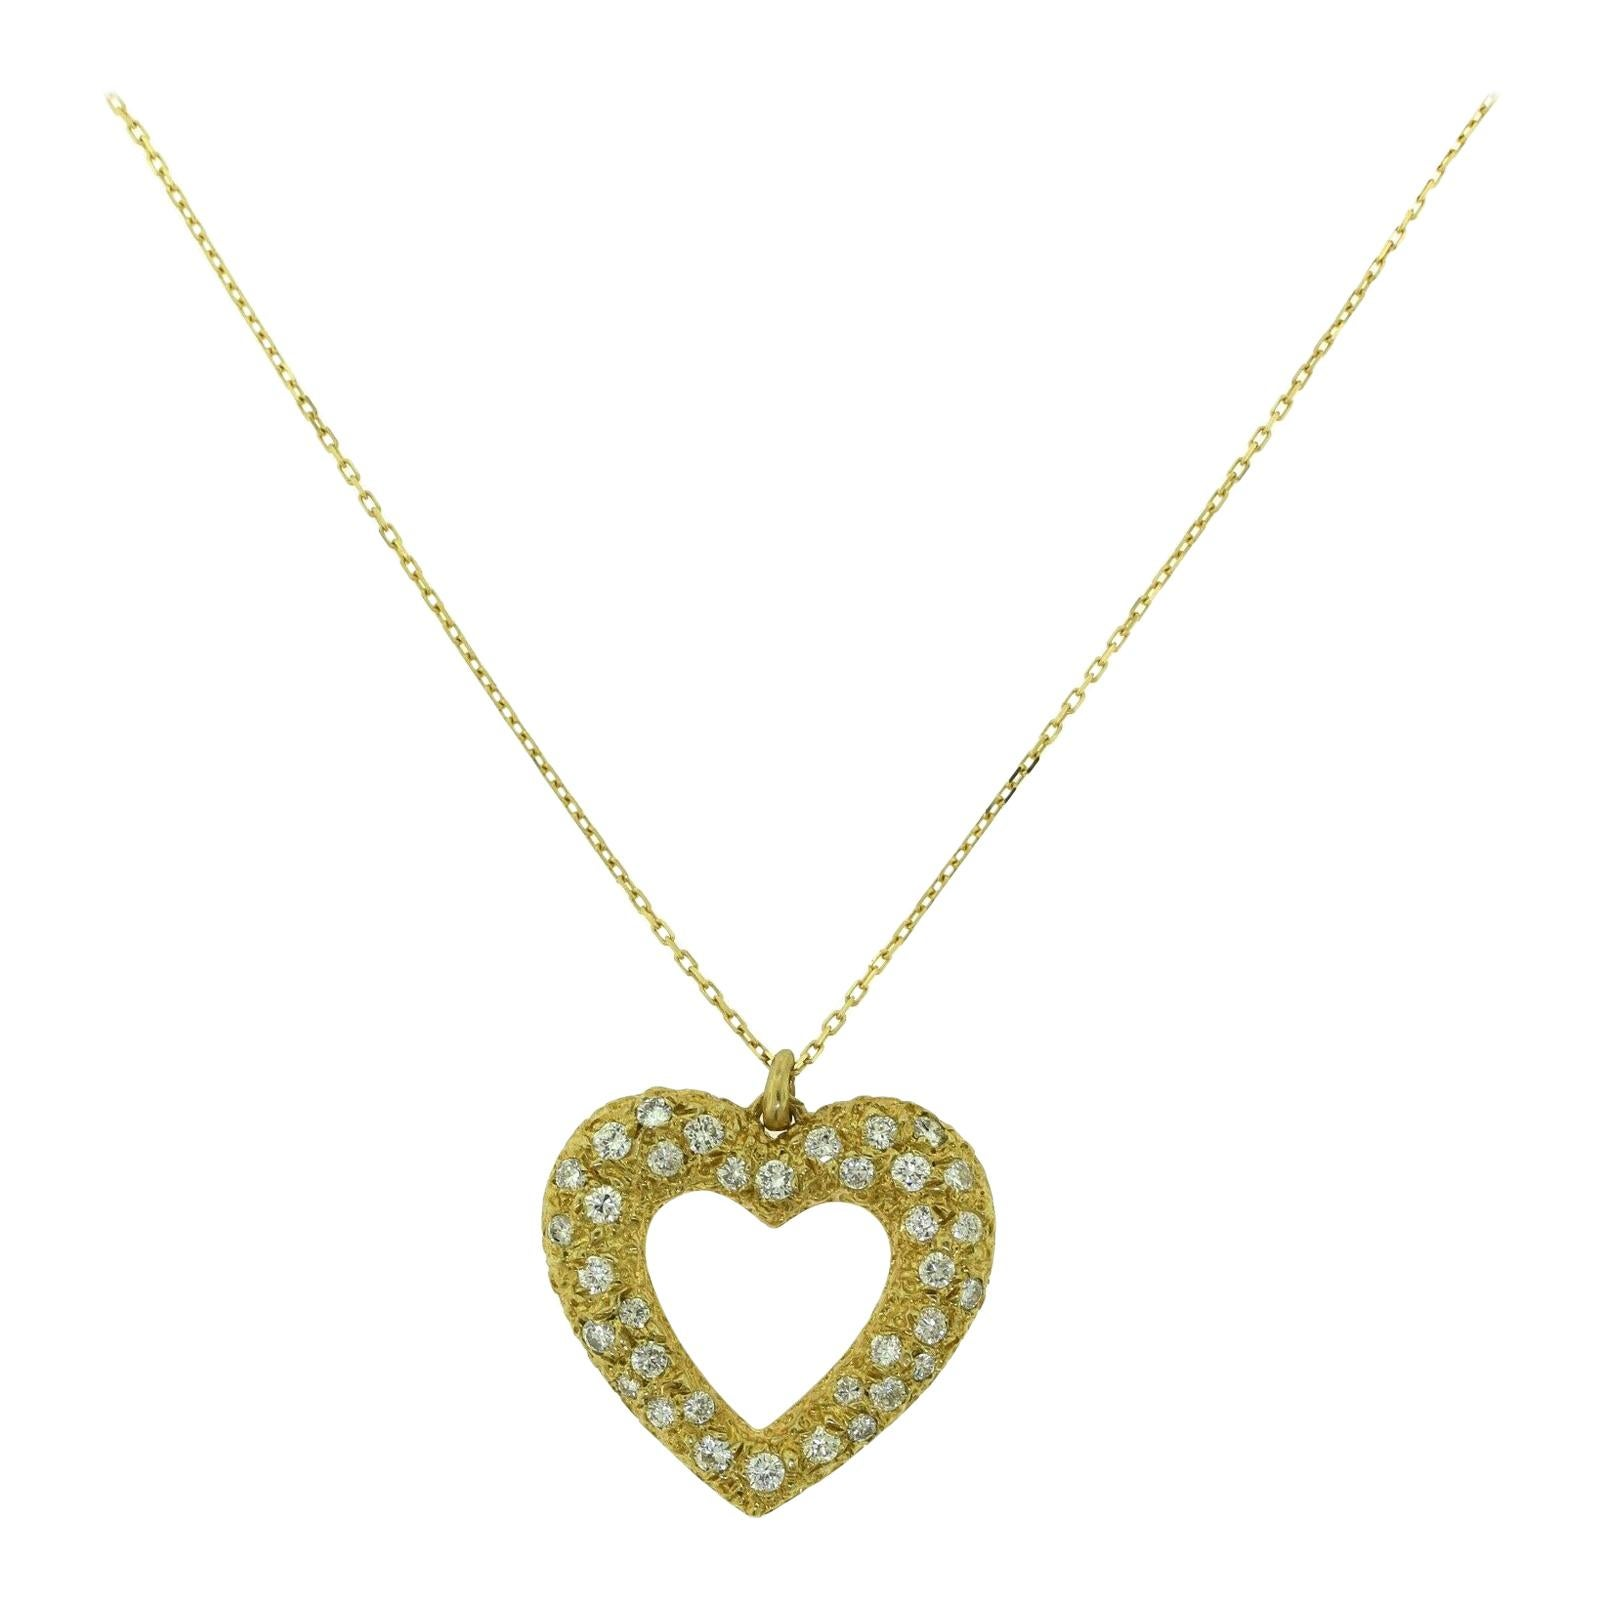 Cartier French Paris Large Heart Diamond Paved Pendant Necklace in Yellow Gold